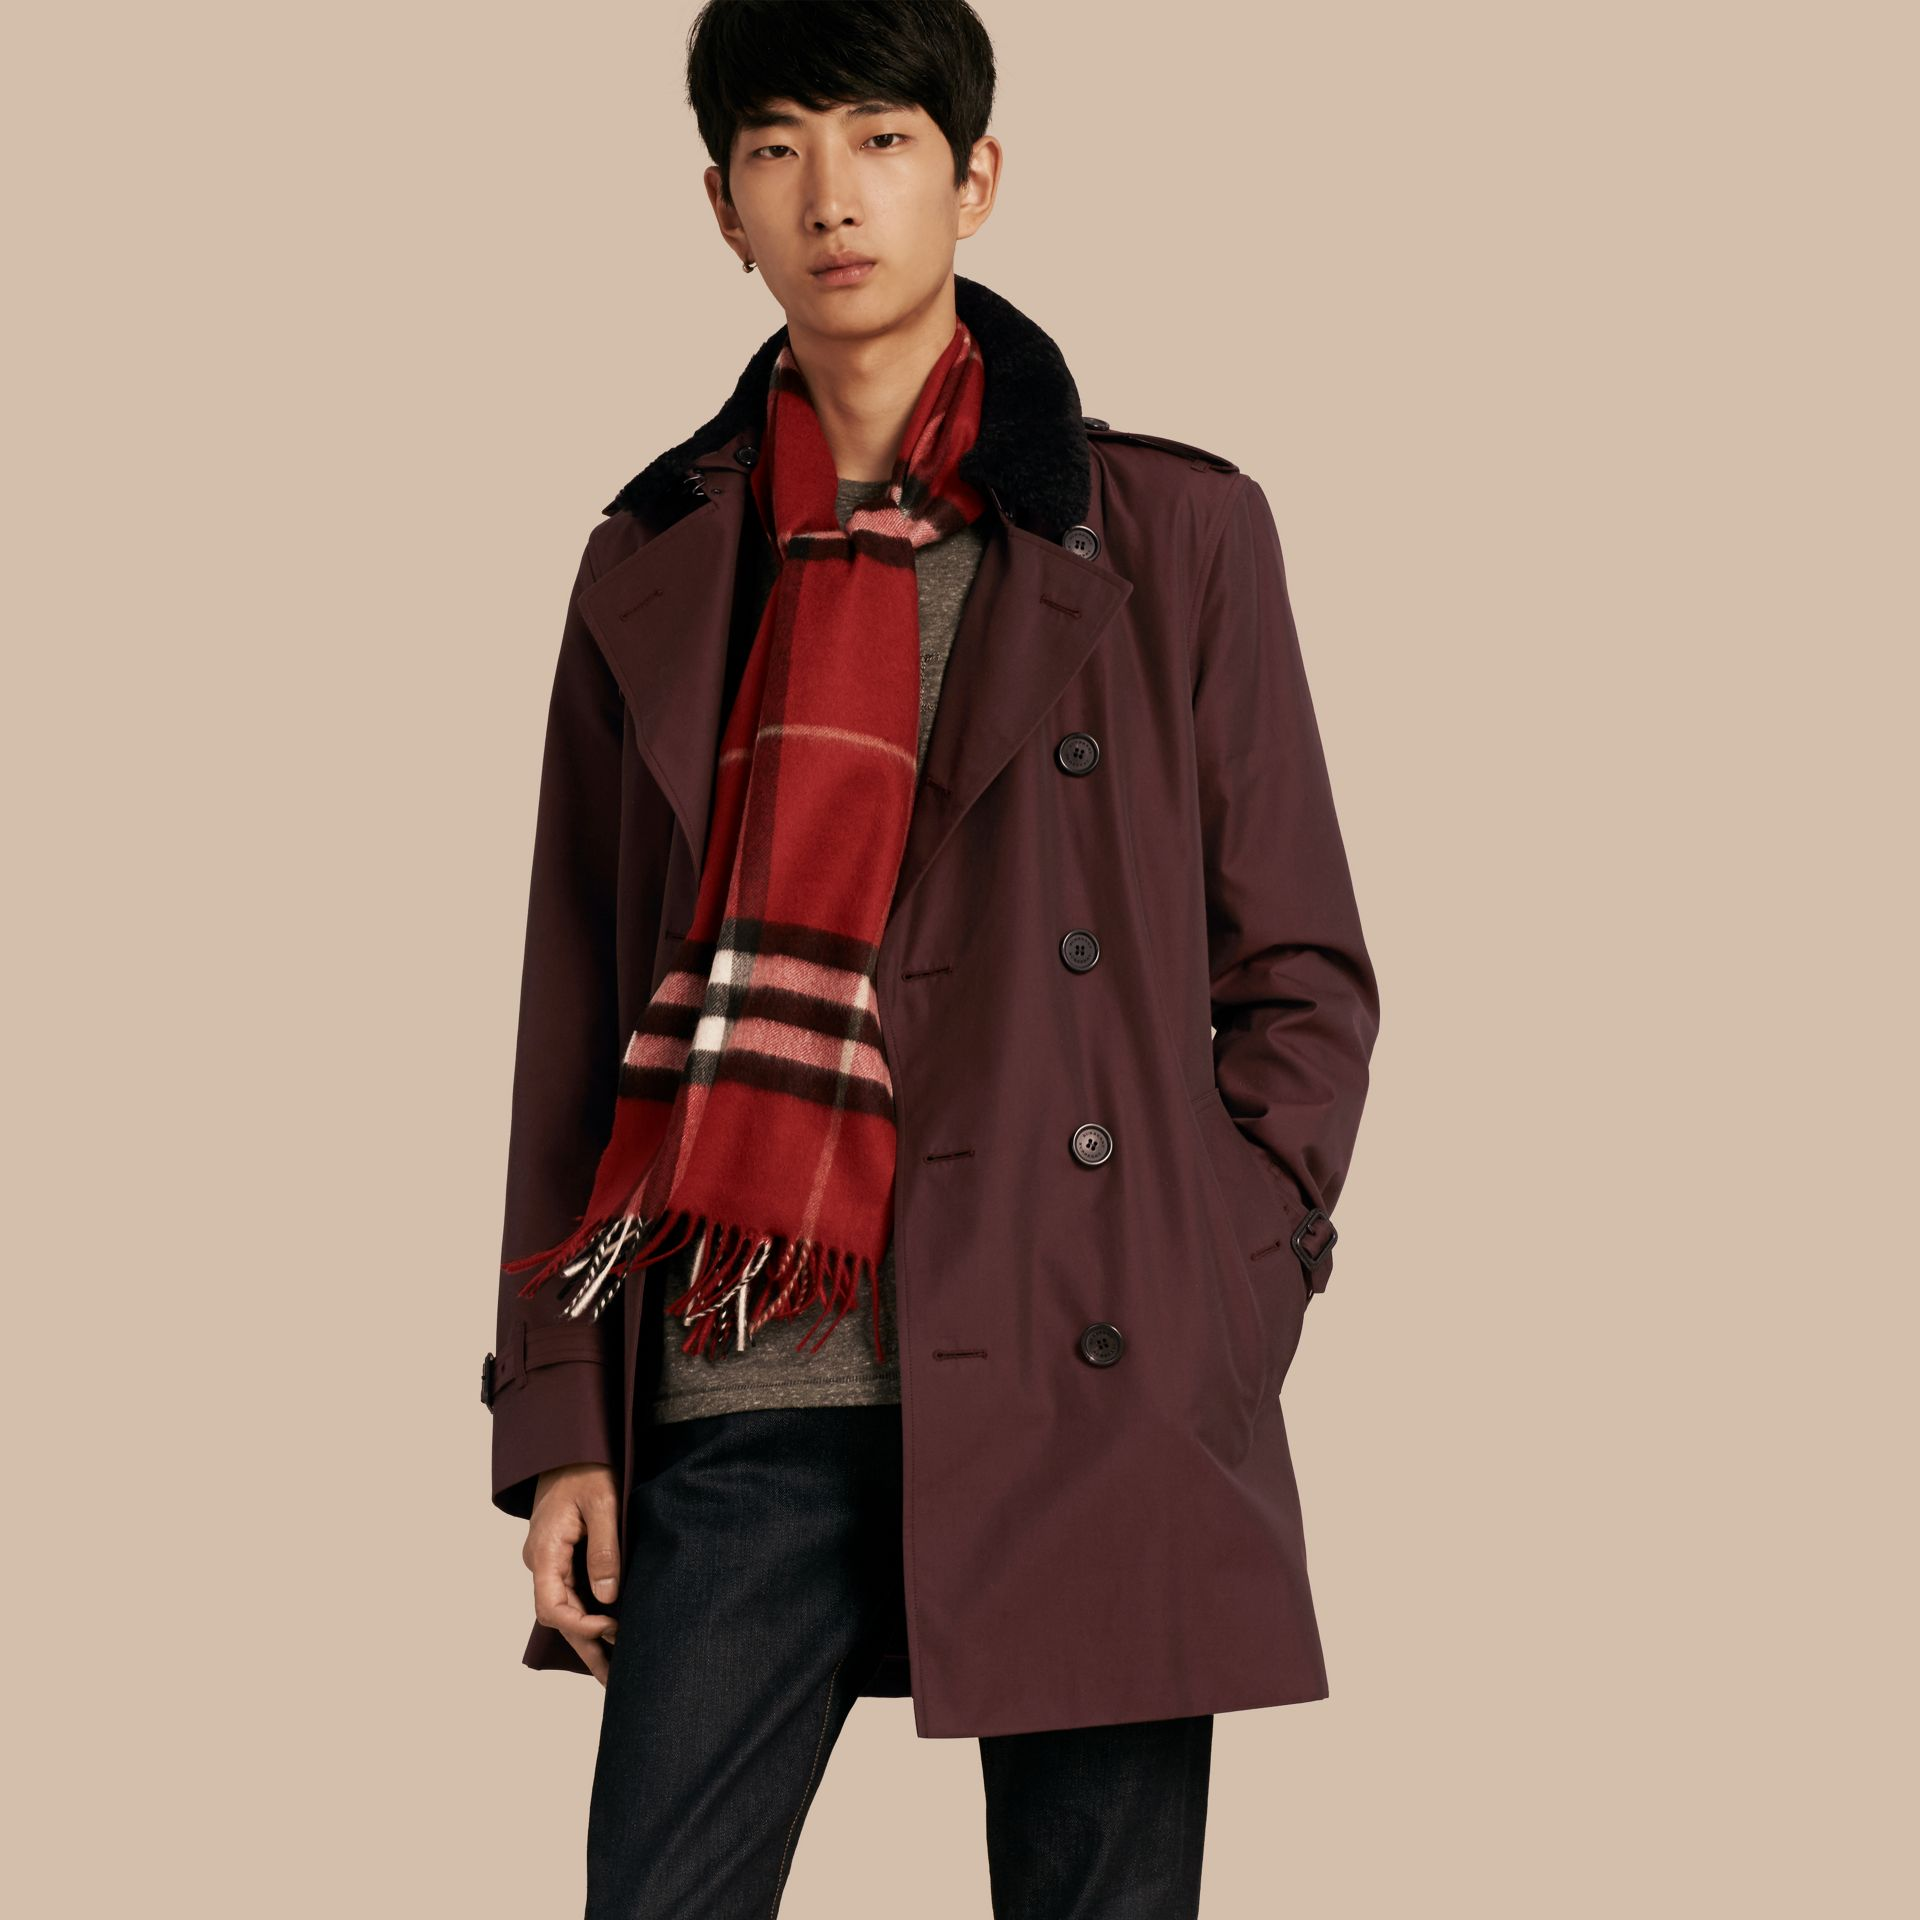 Mahogany red Detachable Shearling Topcollar Cotton Gabardine Trench Coat with Warmer Mahogany Red - gallery image 1